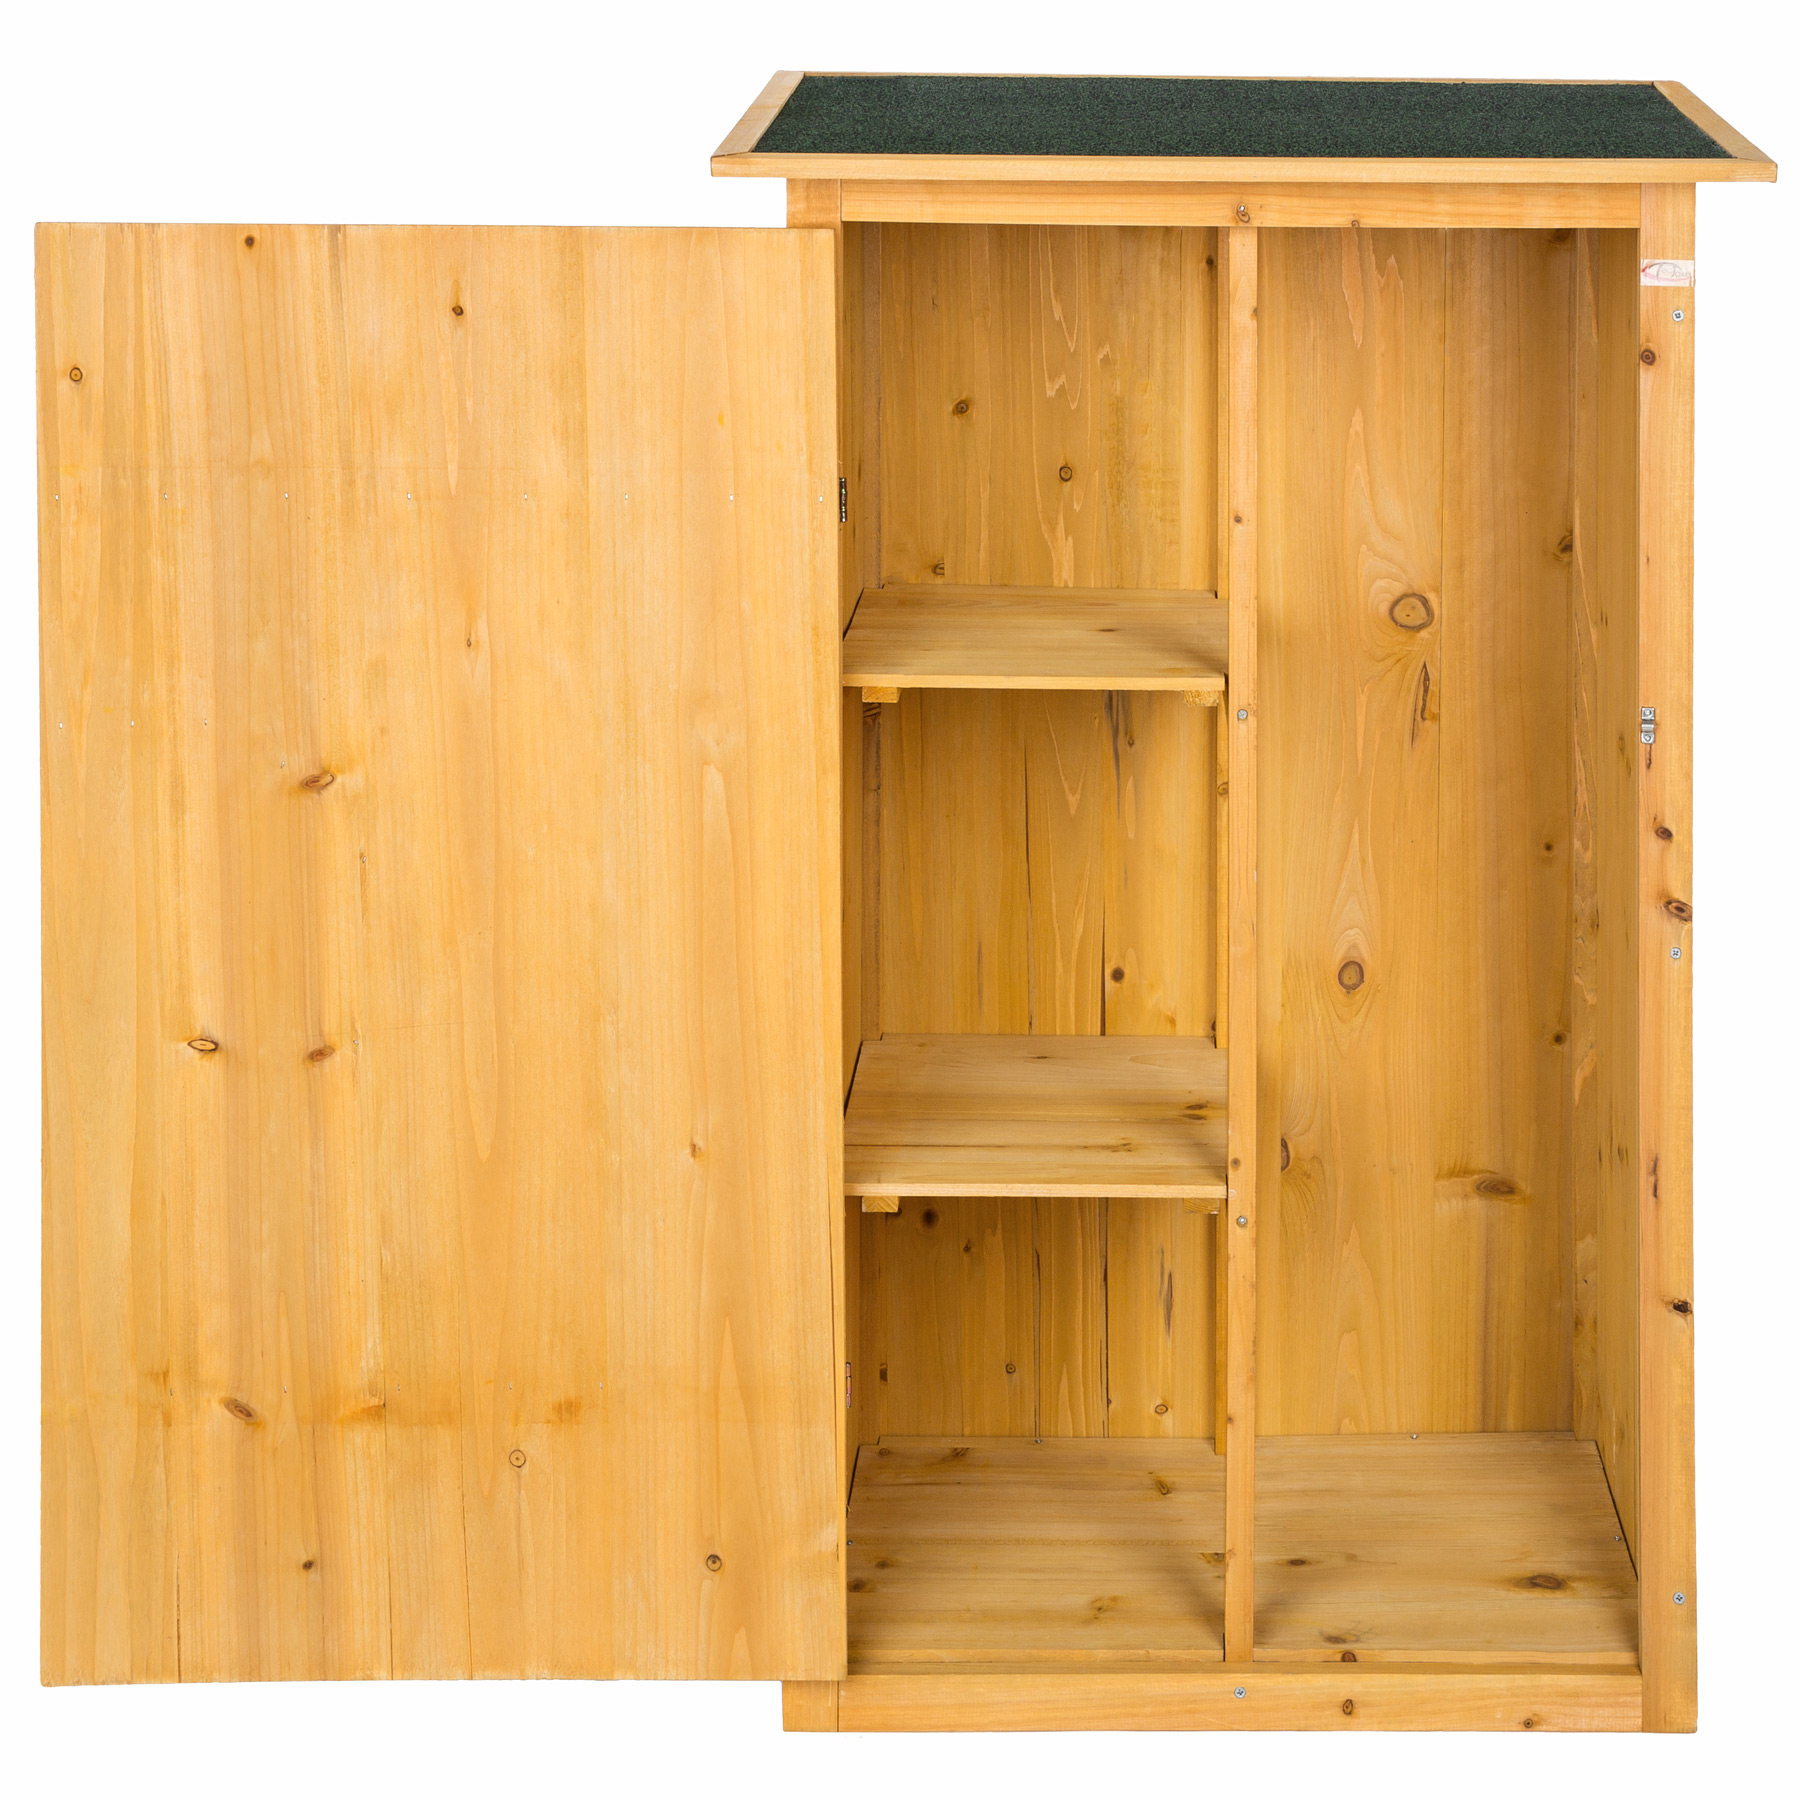 wooden outdoor garden cabinet utility storage tools xxl shelf box shed flat roof. Black Bedroom Furniture Sets. Home Design Ideas